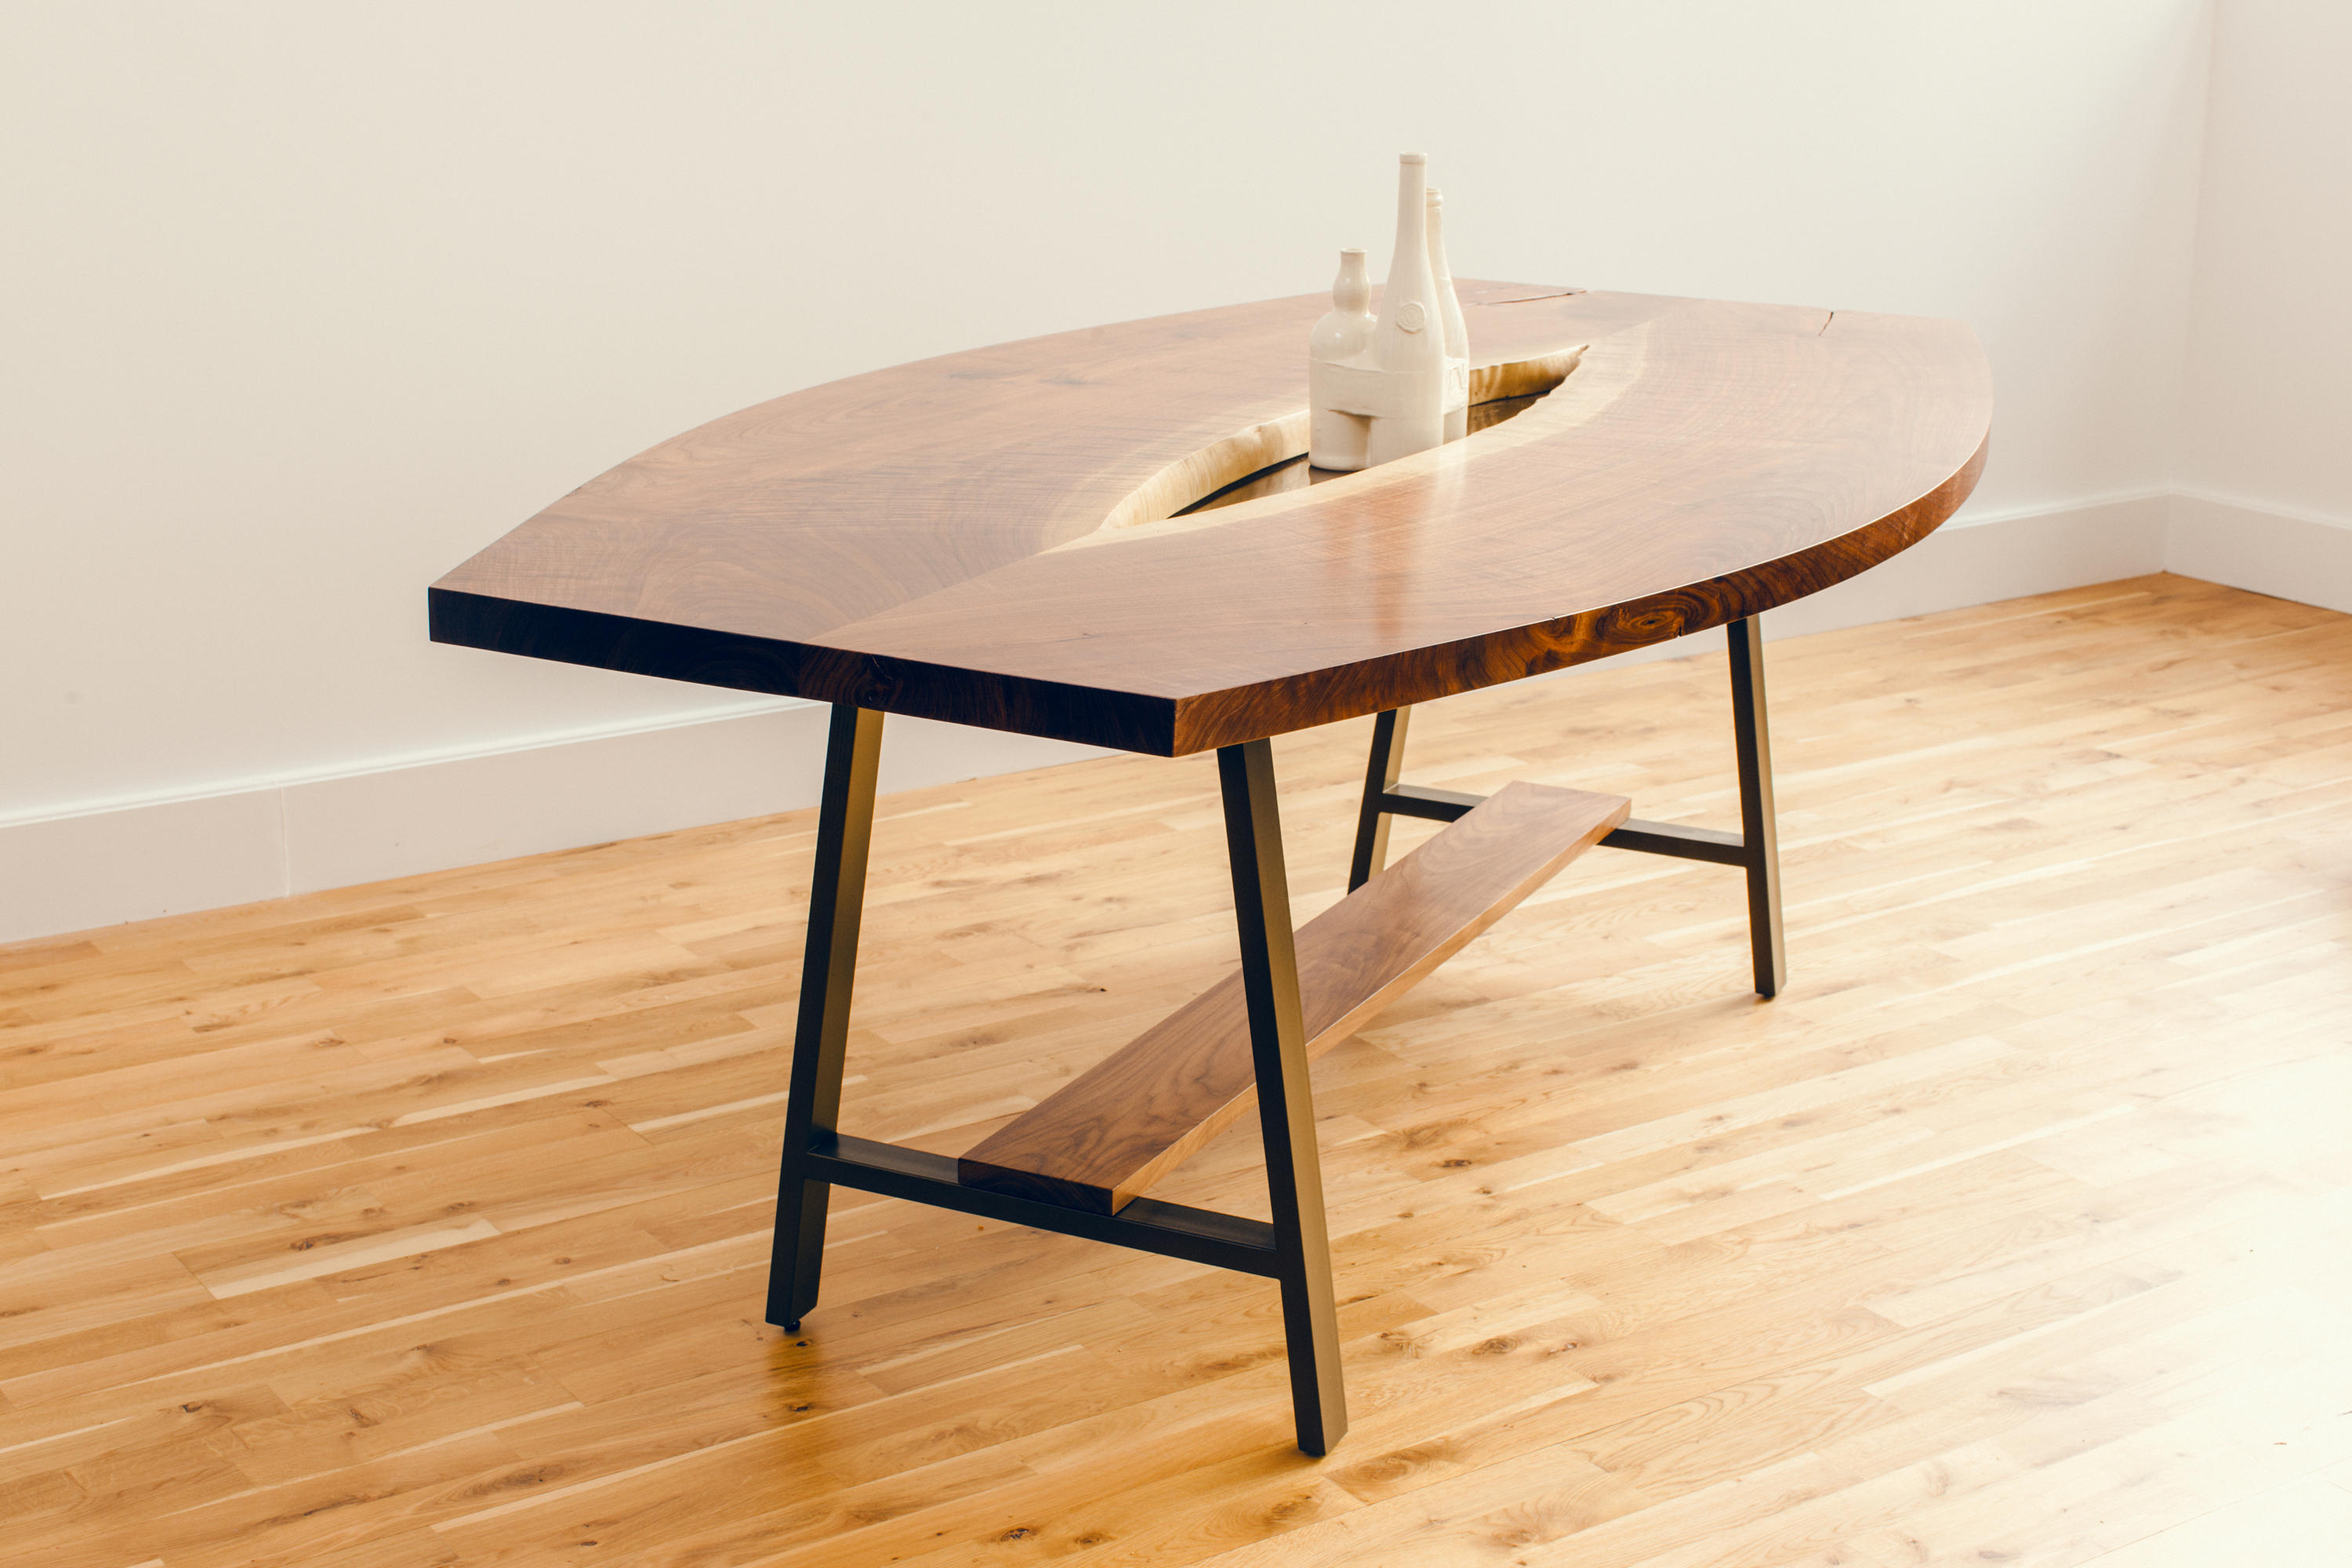 inverted live edge table dining tables from david gaynor. Black Bedroom Furniture Sets. Home Design Ideas